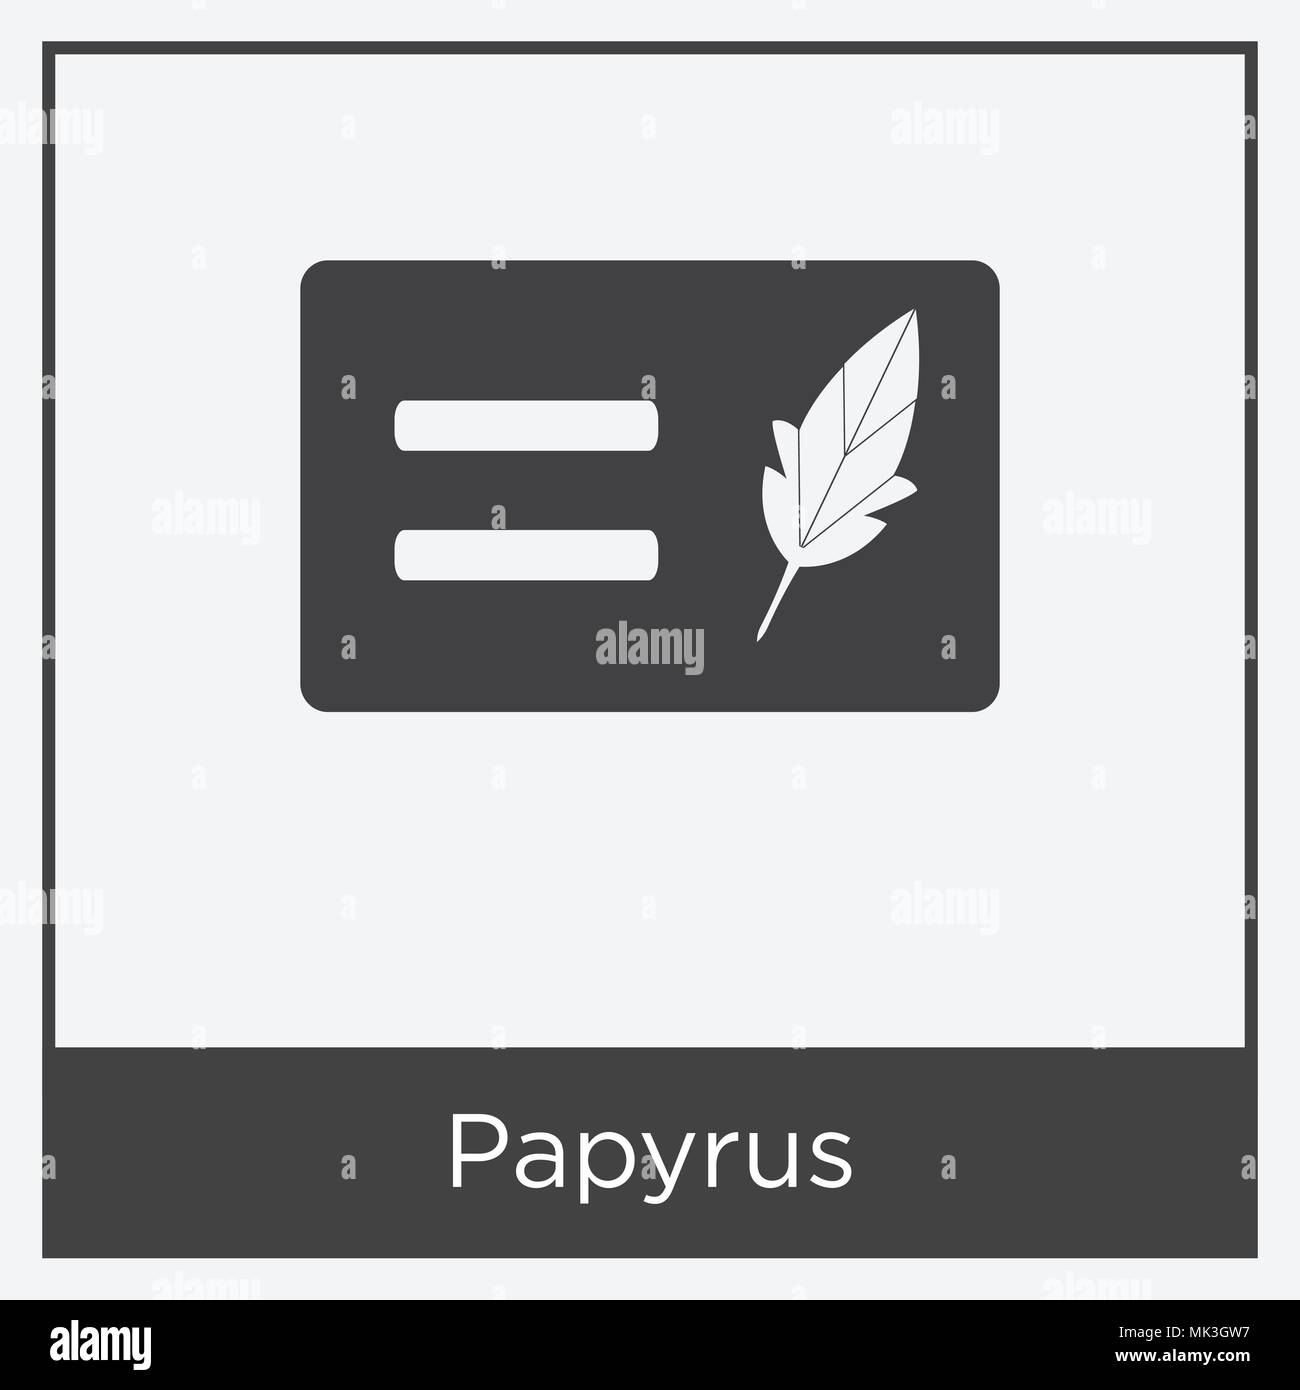 Papyrus icon isolated on white background with gray frame, sign and ...